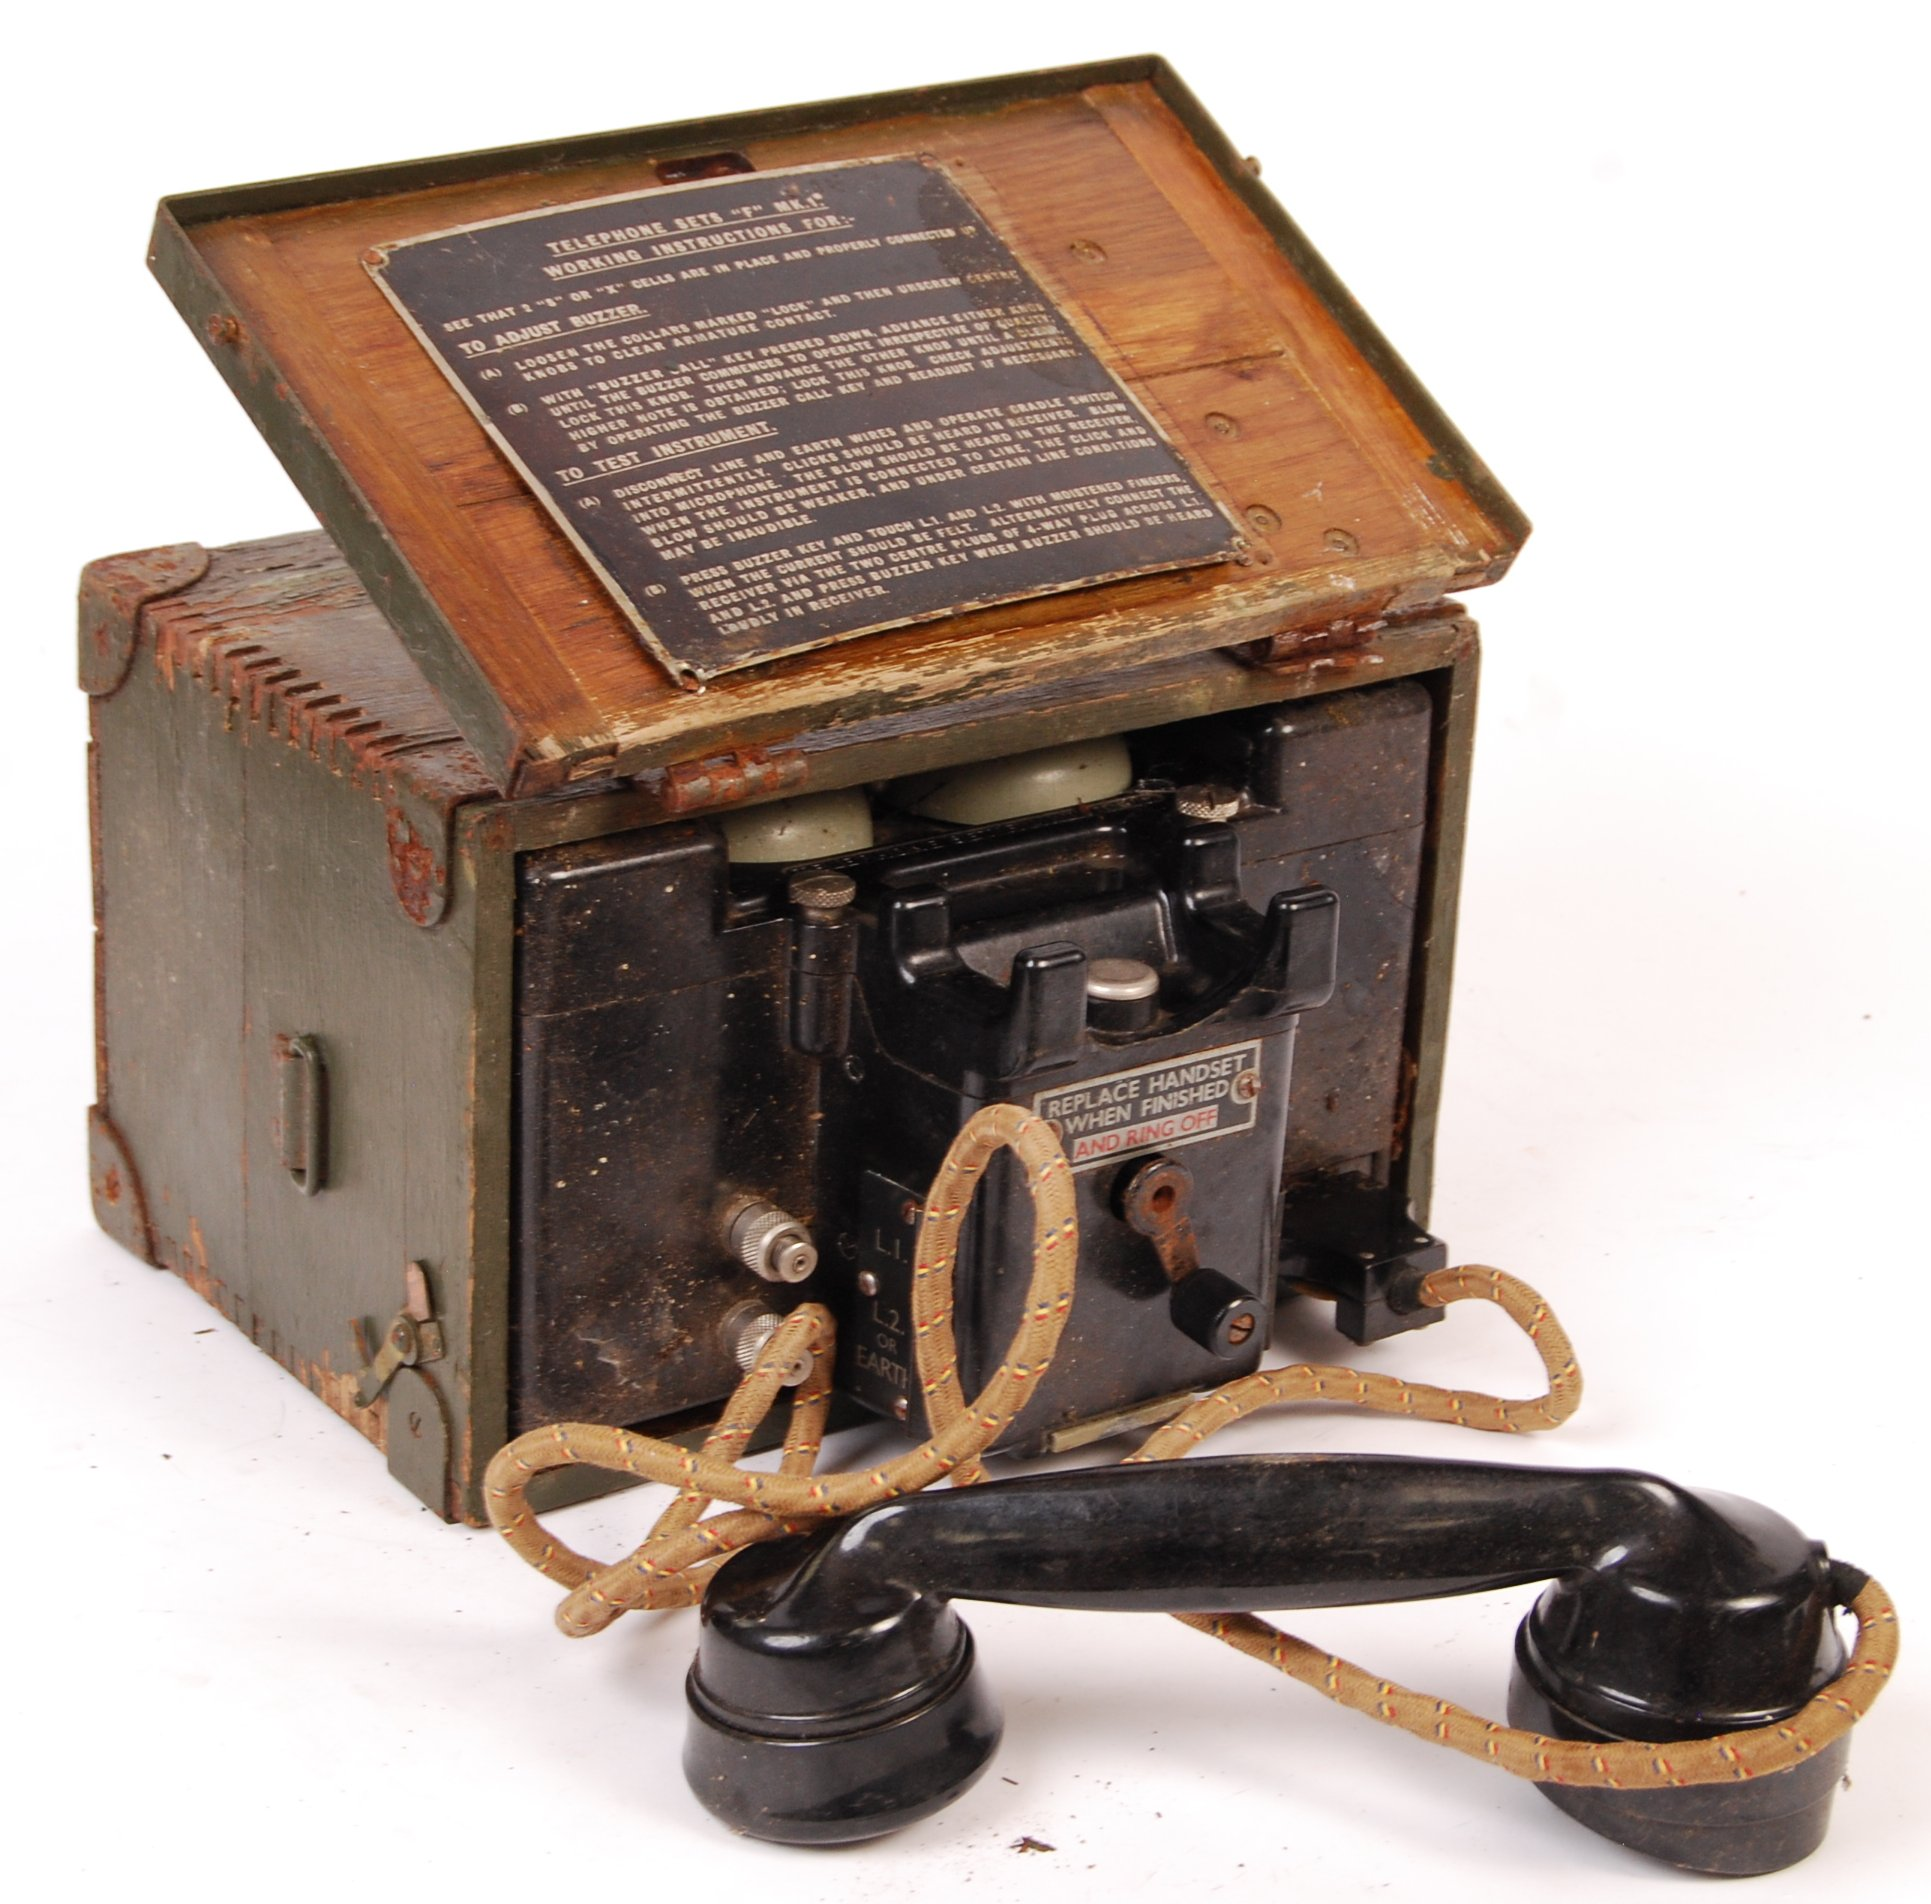 WWII SECOND WORLD WAR ERA MILITARY FIELD TELEPHONE - Image 2 of 3